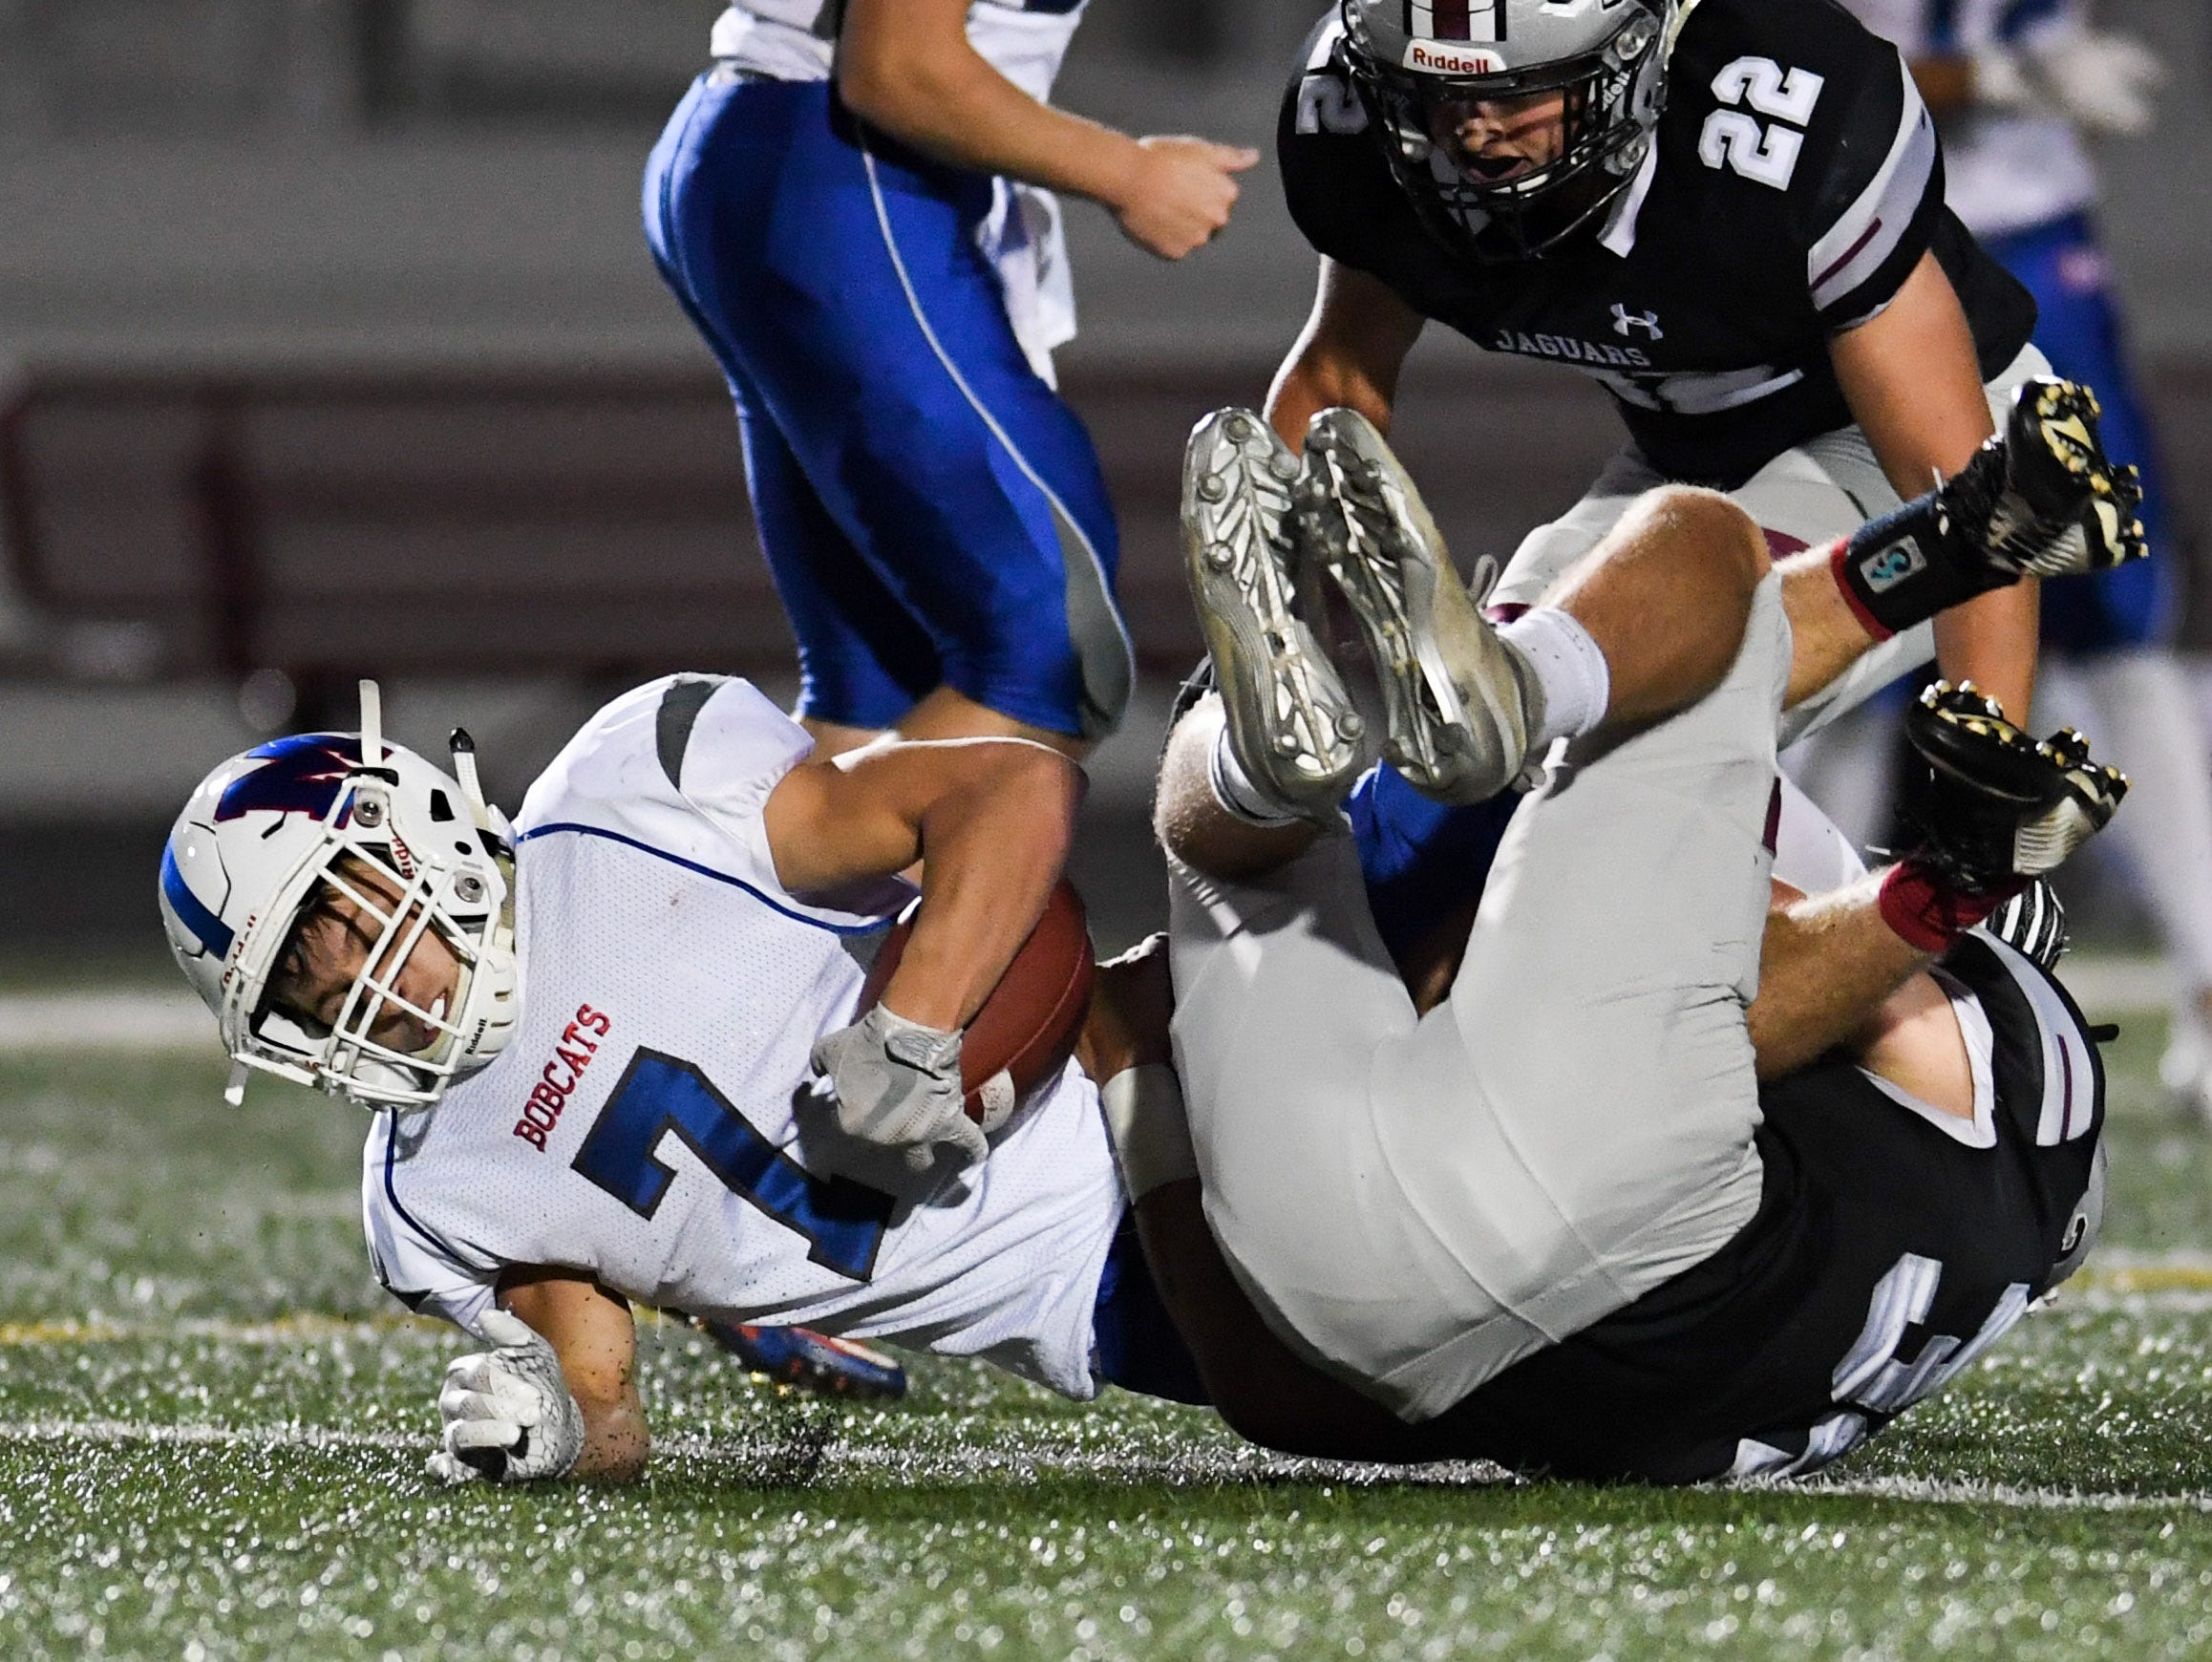 Ankeny Centennial's Gabe Godwin (32)  tackles Marshalltown Quarterback Jacob Smith (5) on Friday, Sept. 21, 2018 during a football game between the Ankeny Centennial Jaguars and the Marshalltown Bobcats at Northview Middle School.